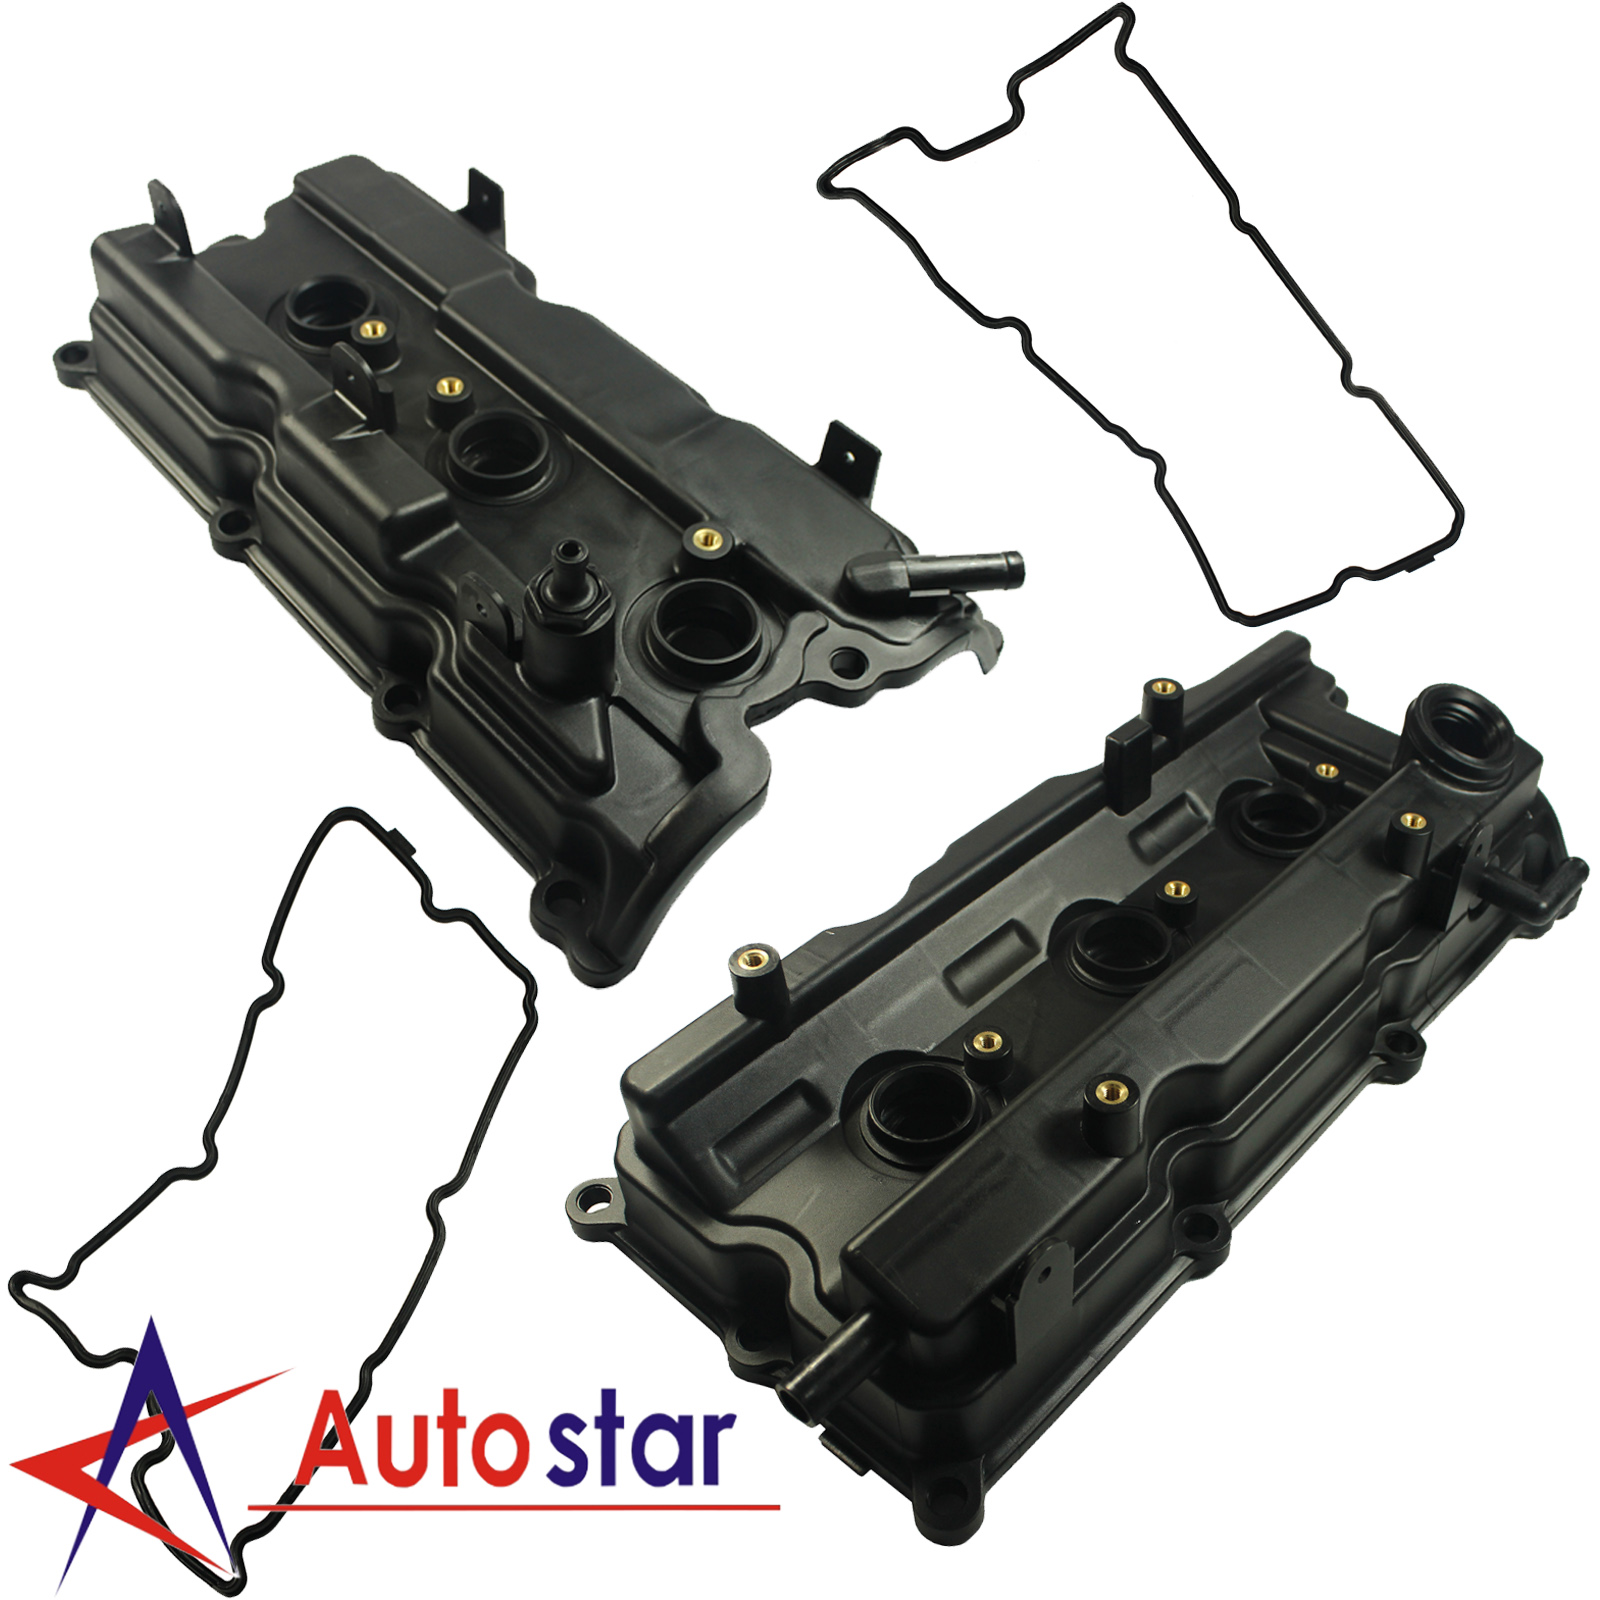 Engine Valve Cover W// Gasket For 03-09 Nissan Quest Maxima Altima Murano 3.5L